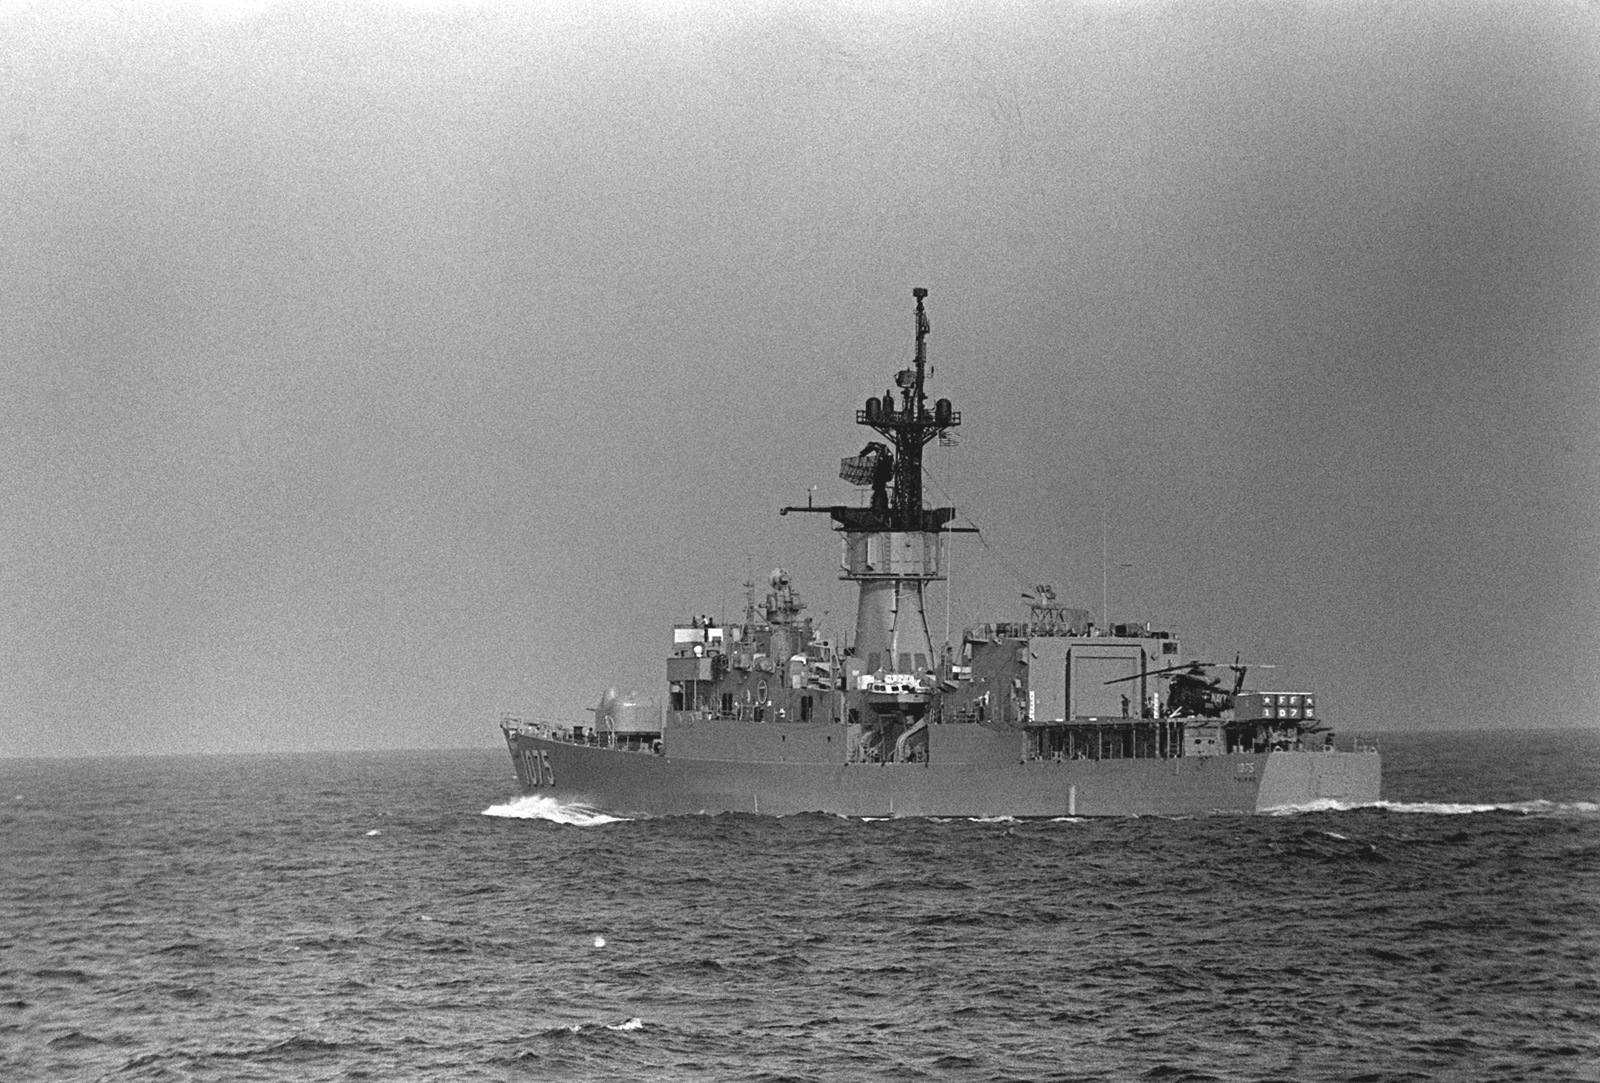 A port quarter view of the frigate USS TRIPPE (FF-1075) during Phase 0 of exercise Unitas XX